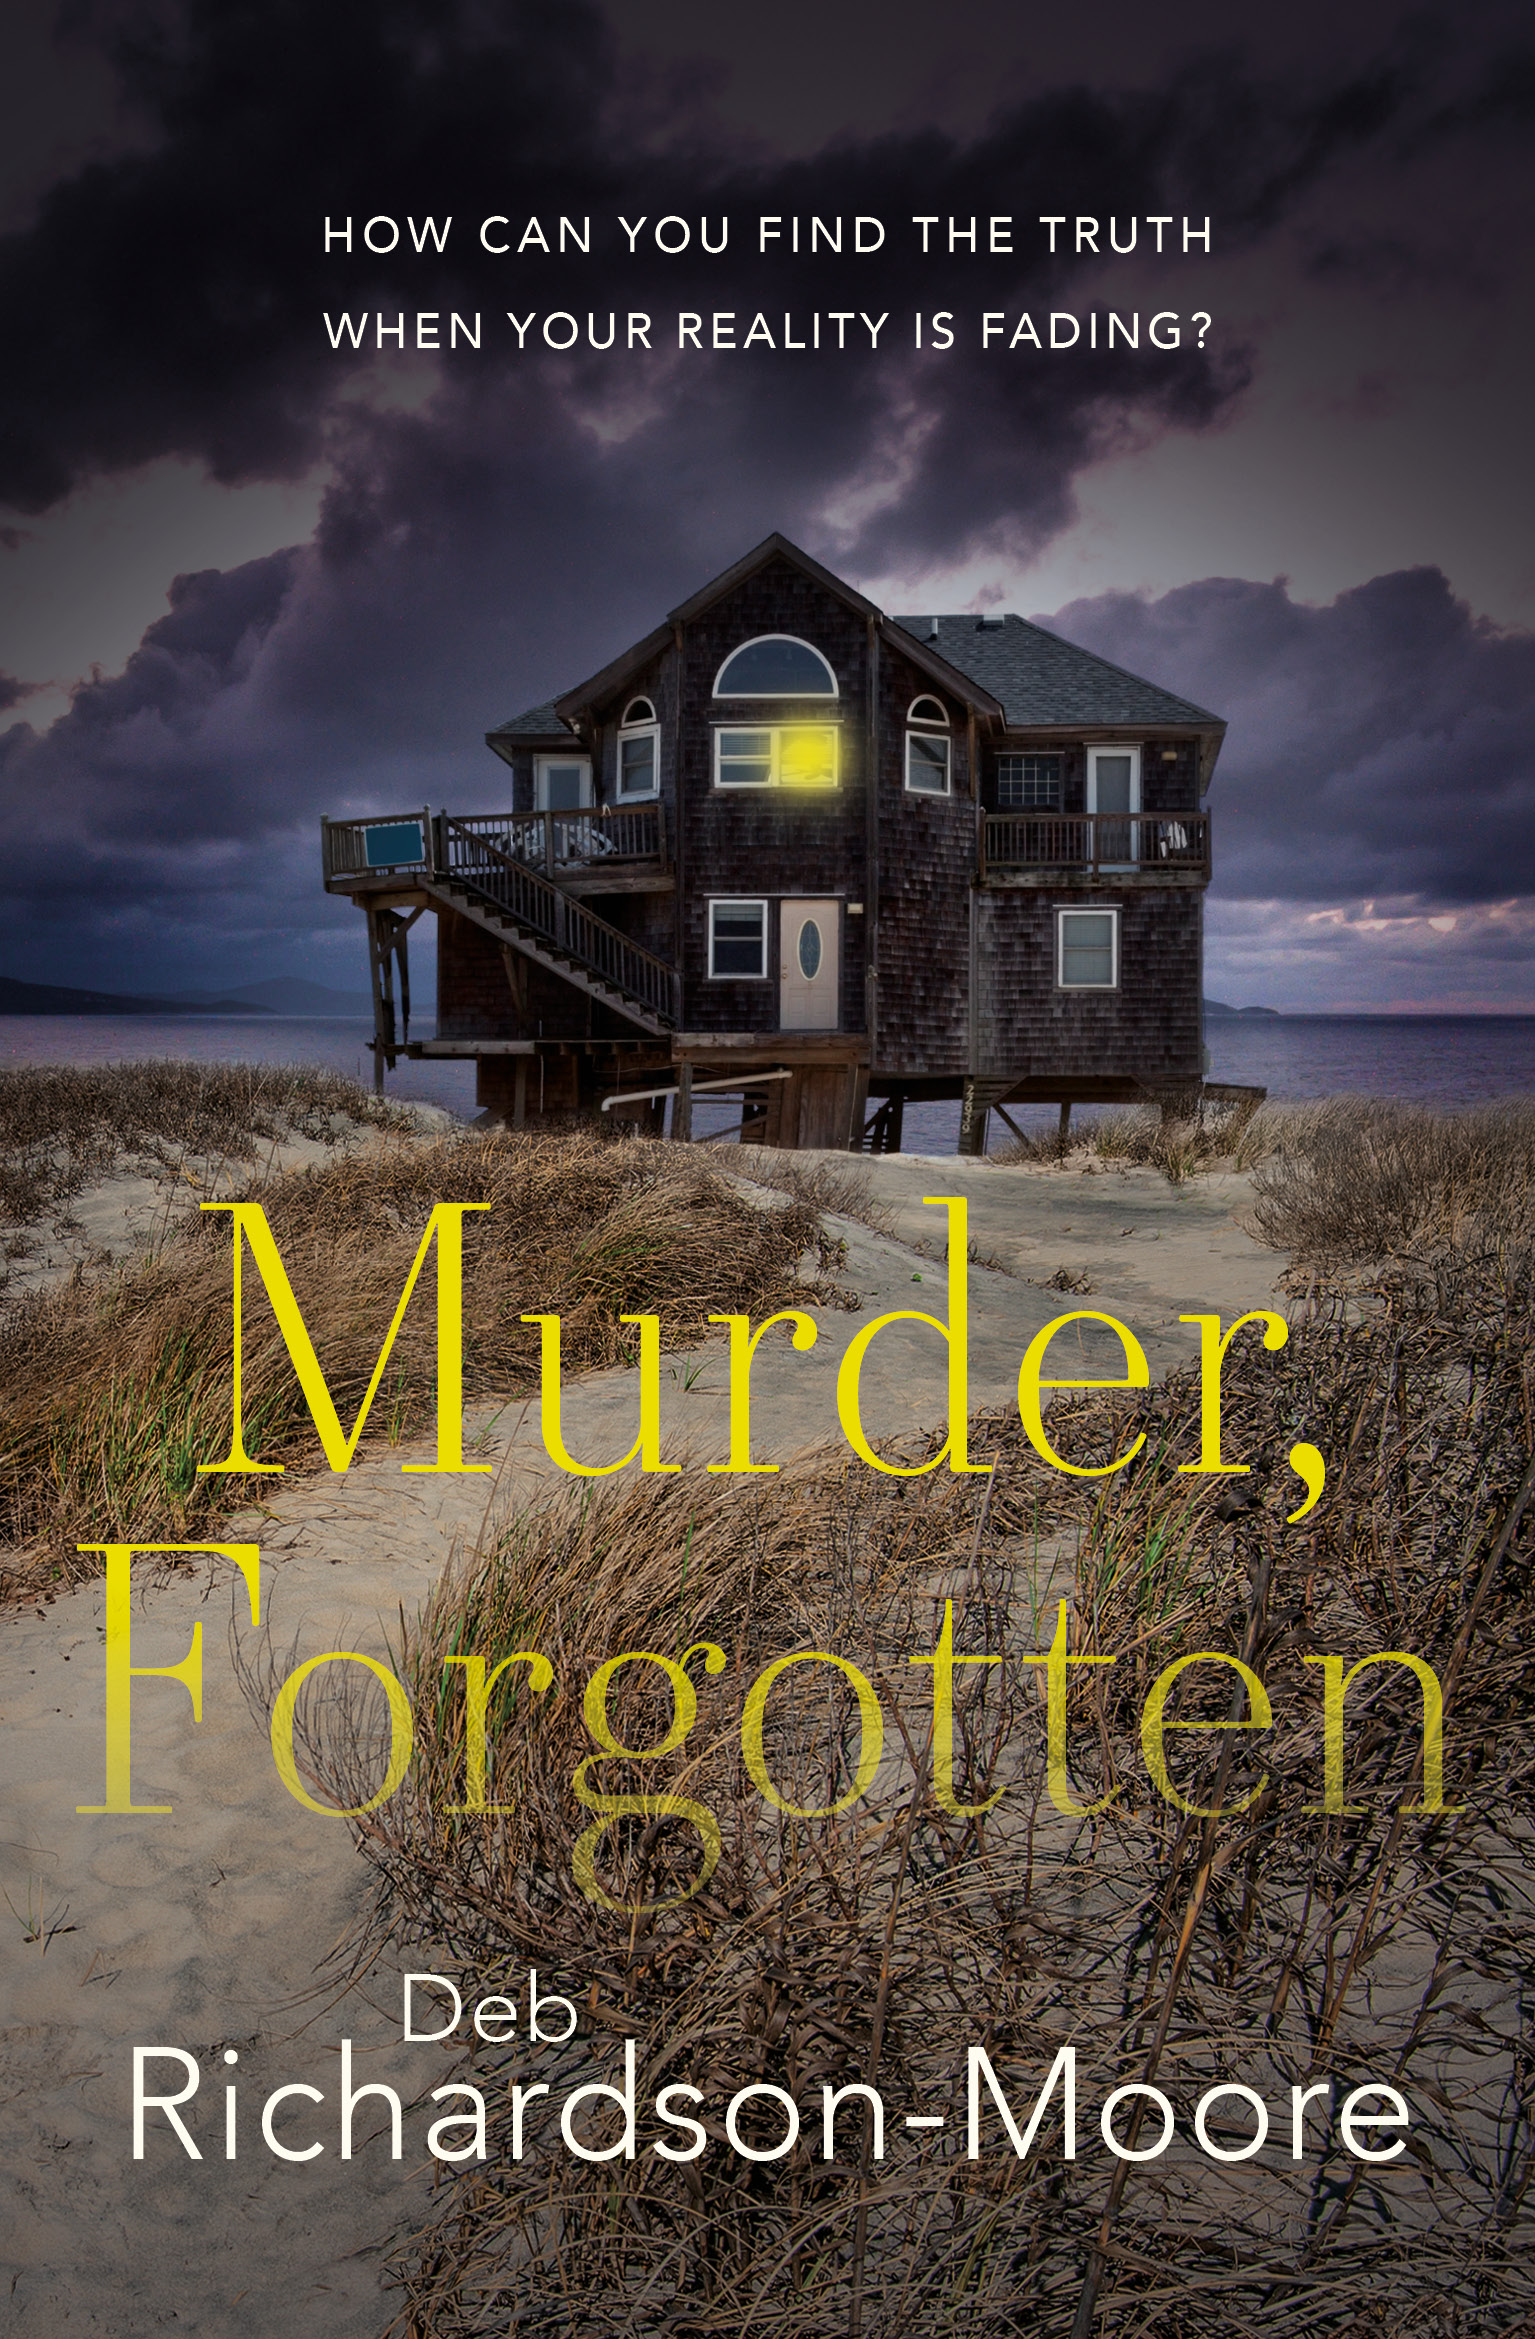 Murder, Forgotten by Deb Richardson-Moore